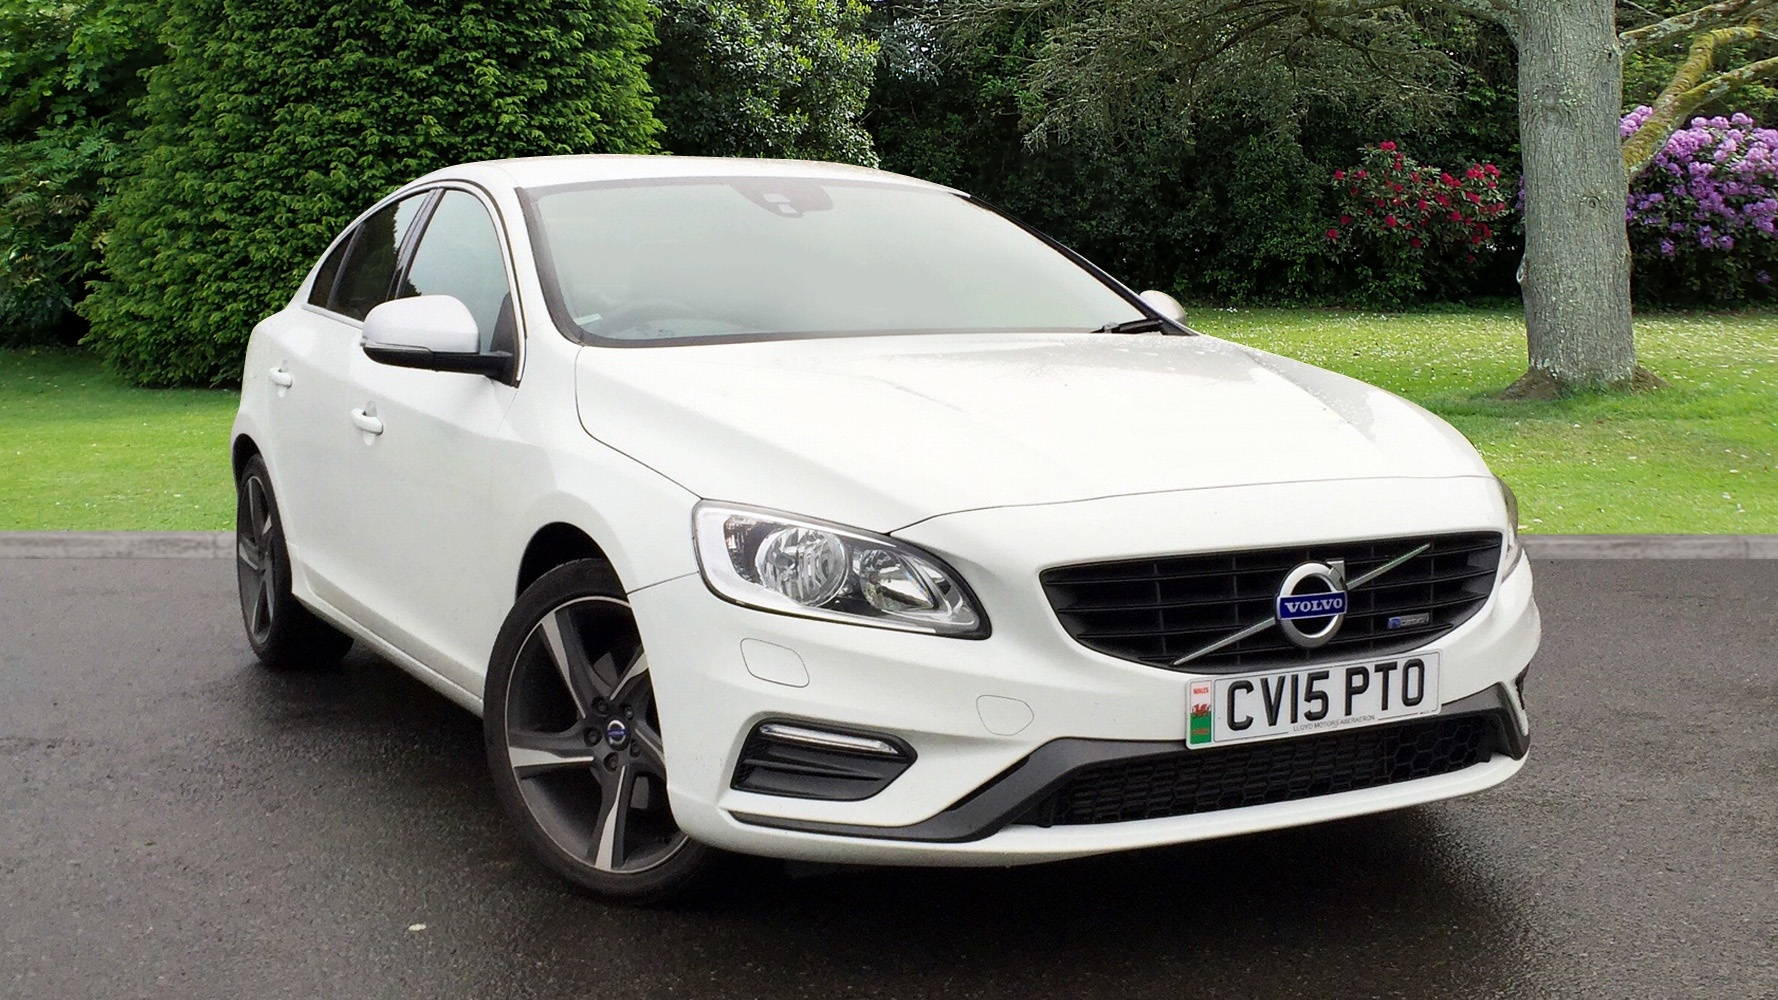 volvo s60 d2 r design 20 road tax used vehicle by lloyd. Black Bedroom Furniture Sets. Home Design Ideas